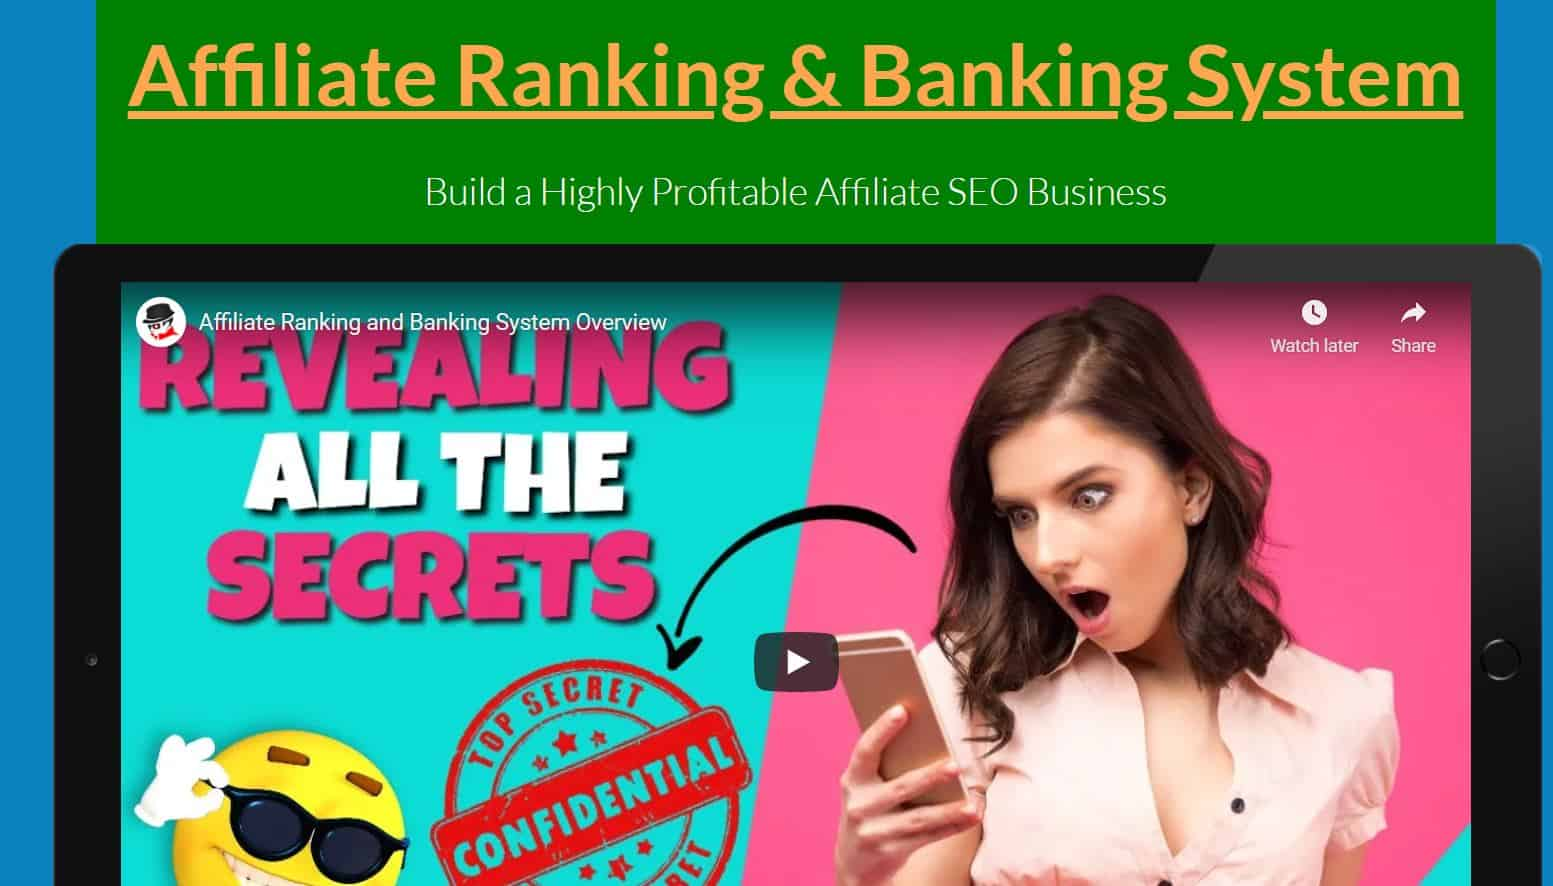 Ryan Hoek Affiliate Ranking and Banking System